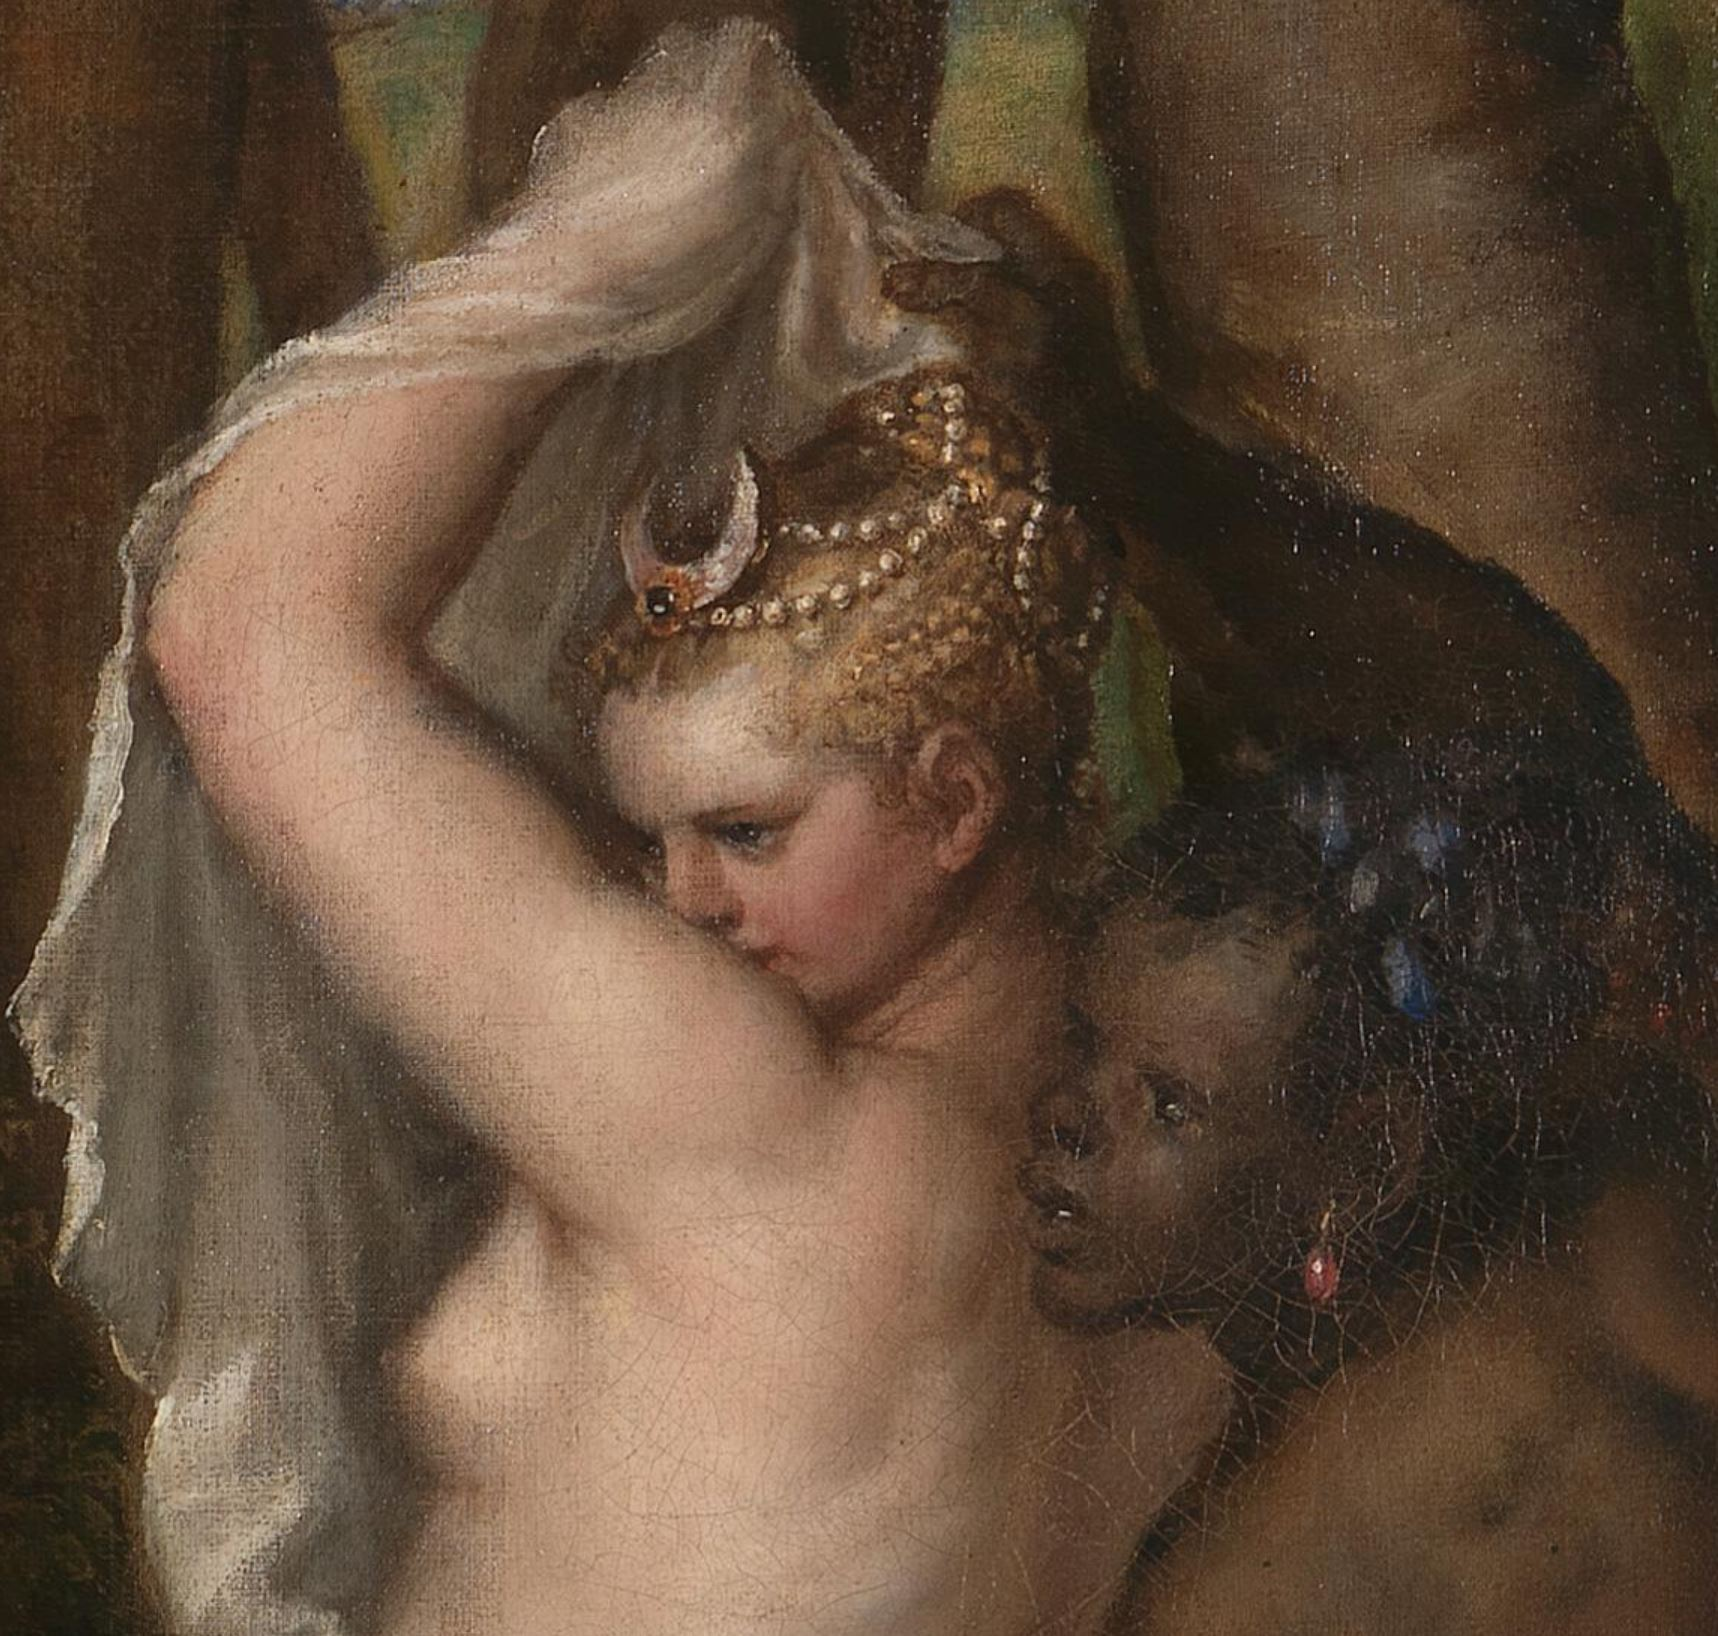 Titien 1556-1559 Diane et Acteon, Londres, National Gallery et Edimbourg, National Gallery of Scotland detail noire